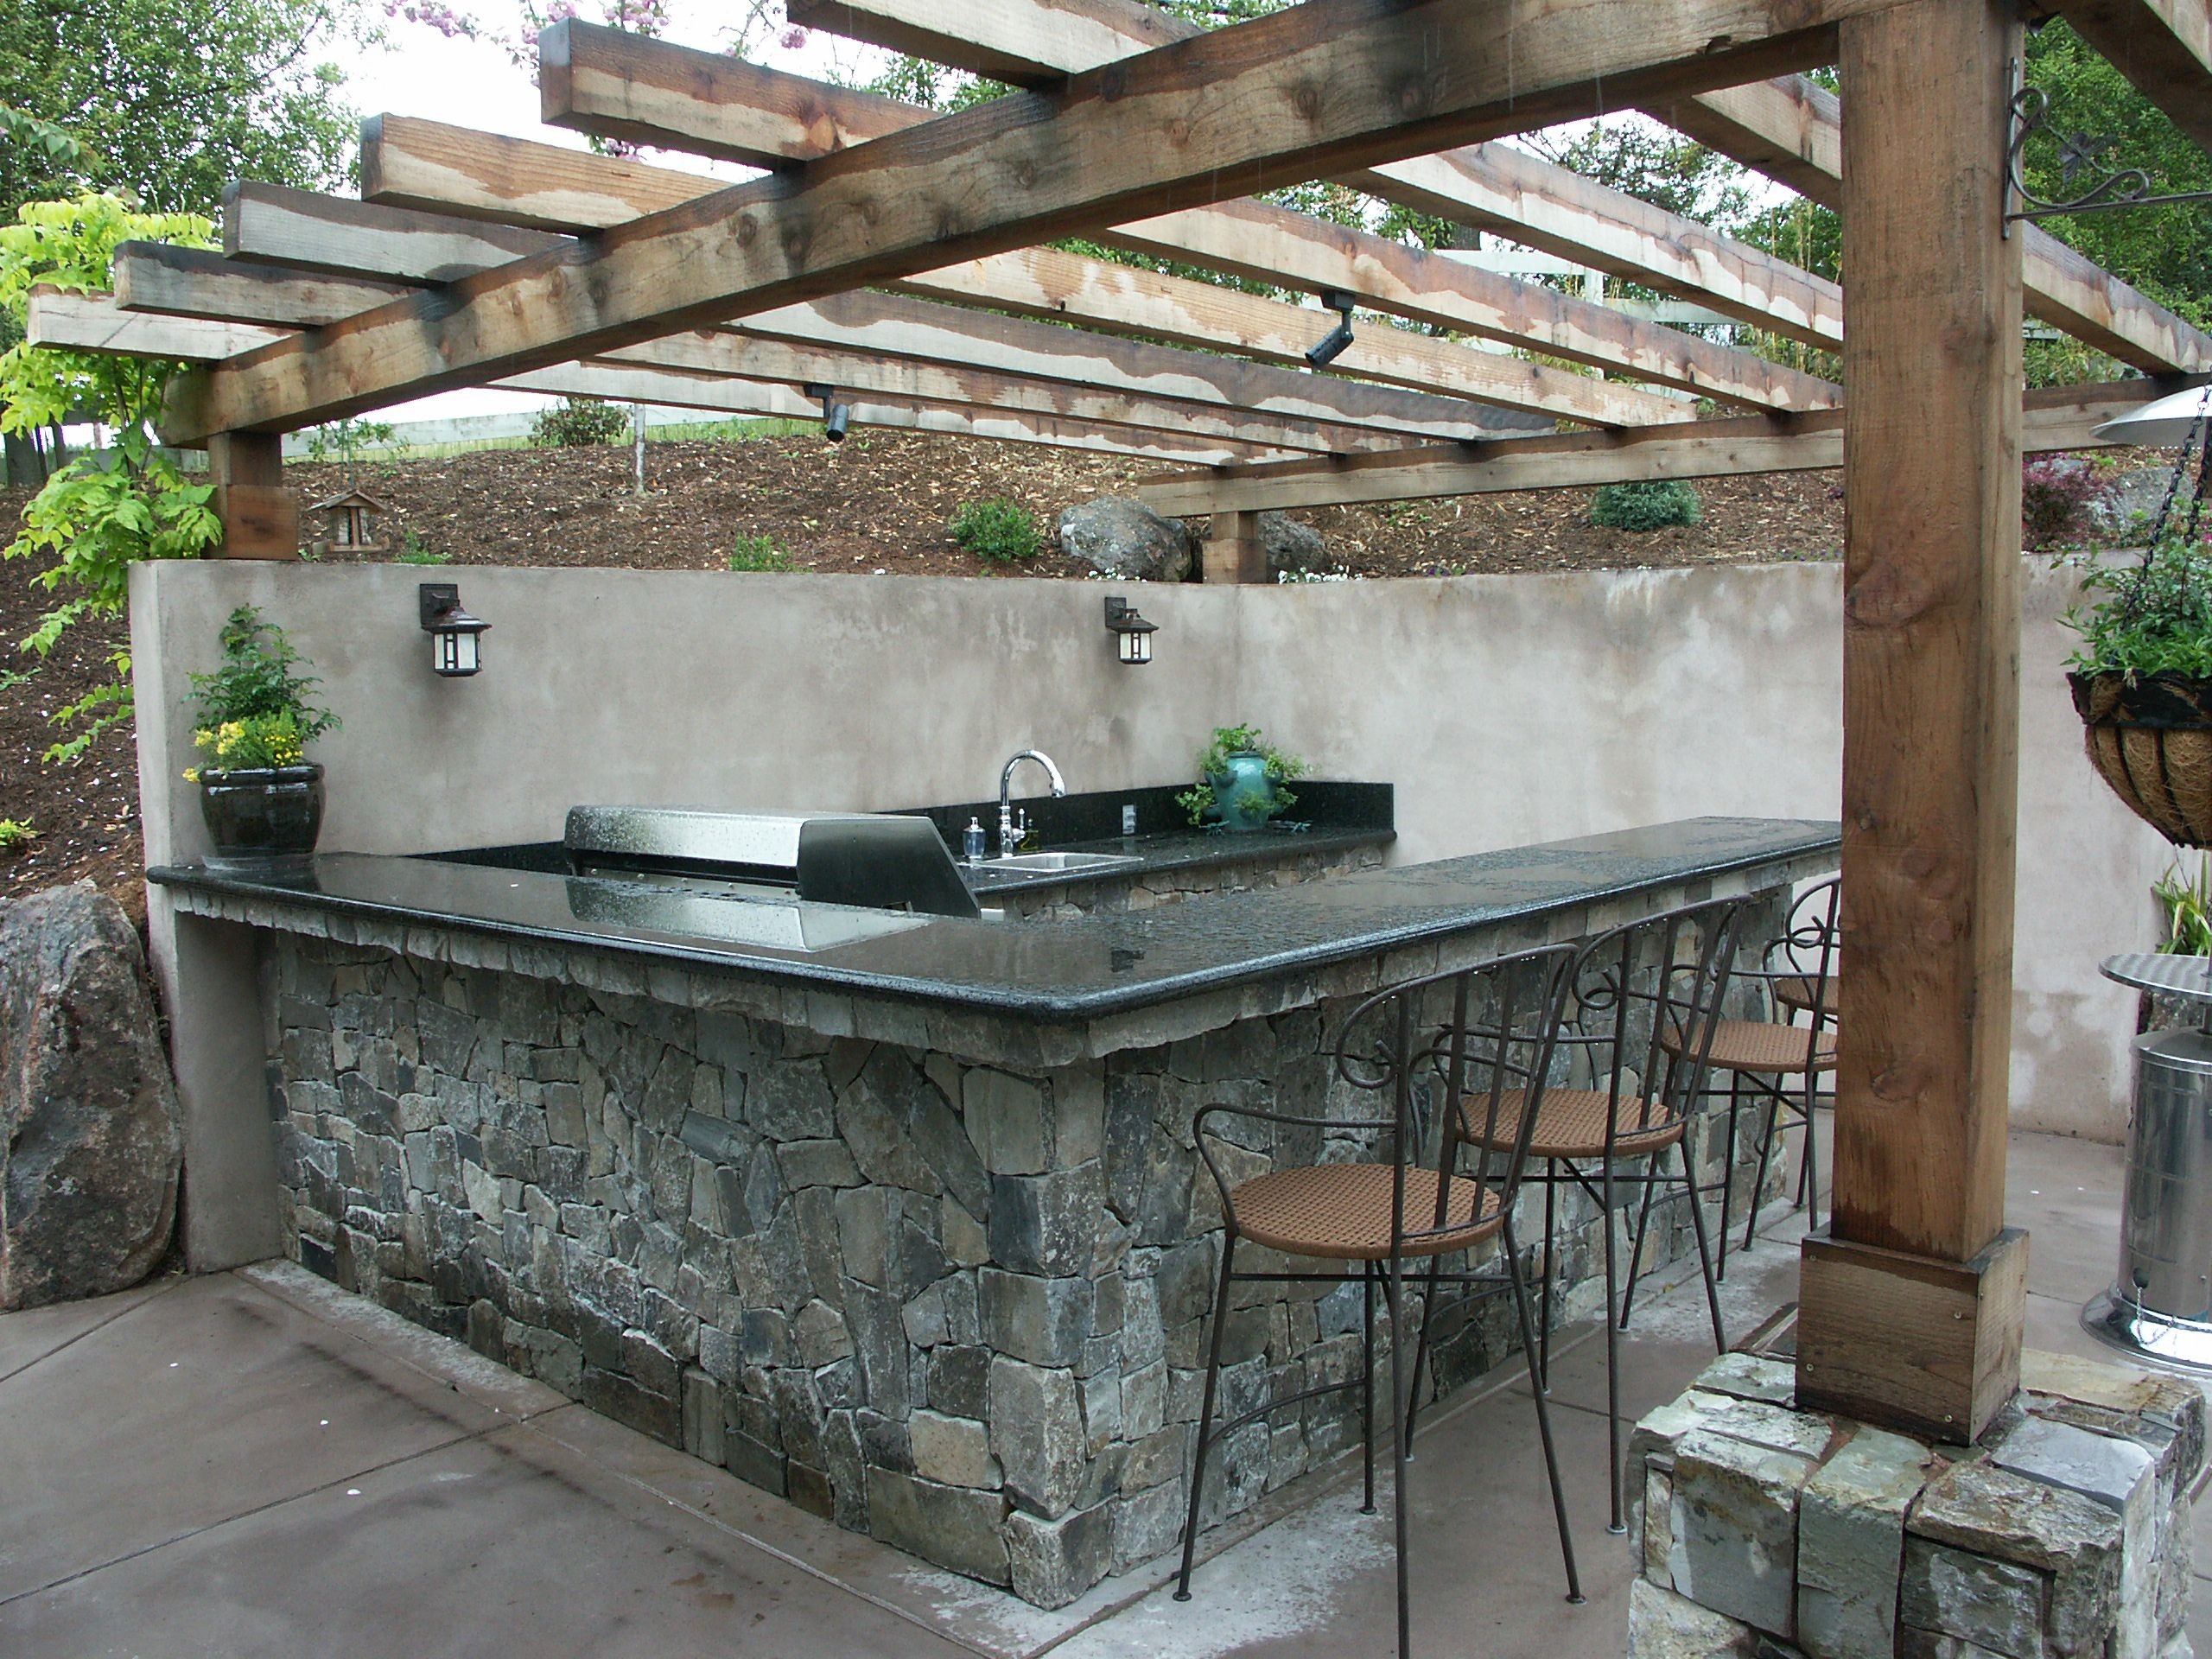 Granite Wrap Countertops Outdoor Kitchen Cut Into Slope Stone Veneer Finish With